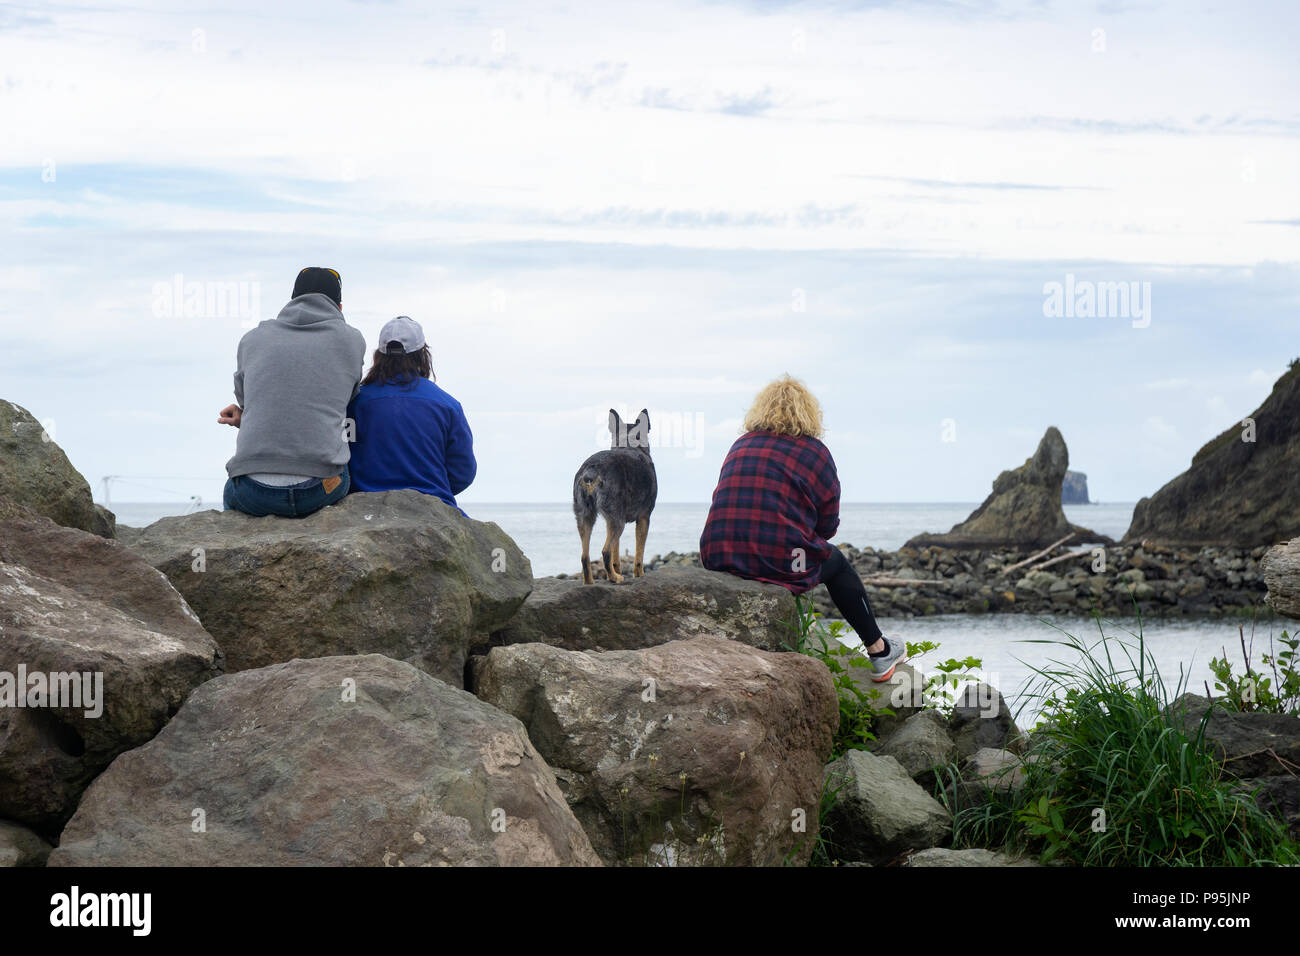 People and dog sitting on rocks looking at the pacific ocean at First Beach, La Push, Olympic Peninsula, Washington state. - Stock Image